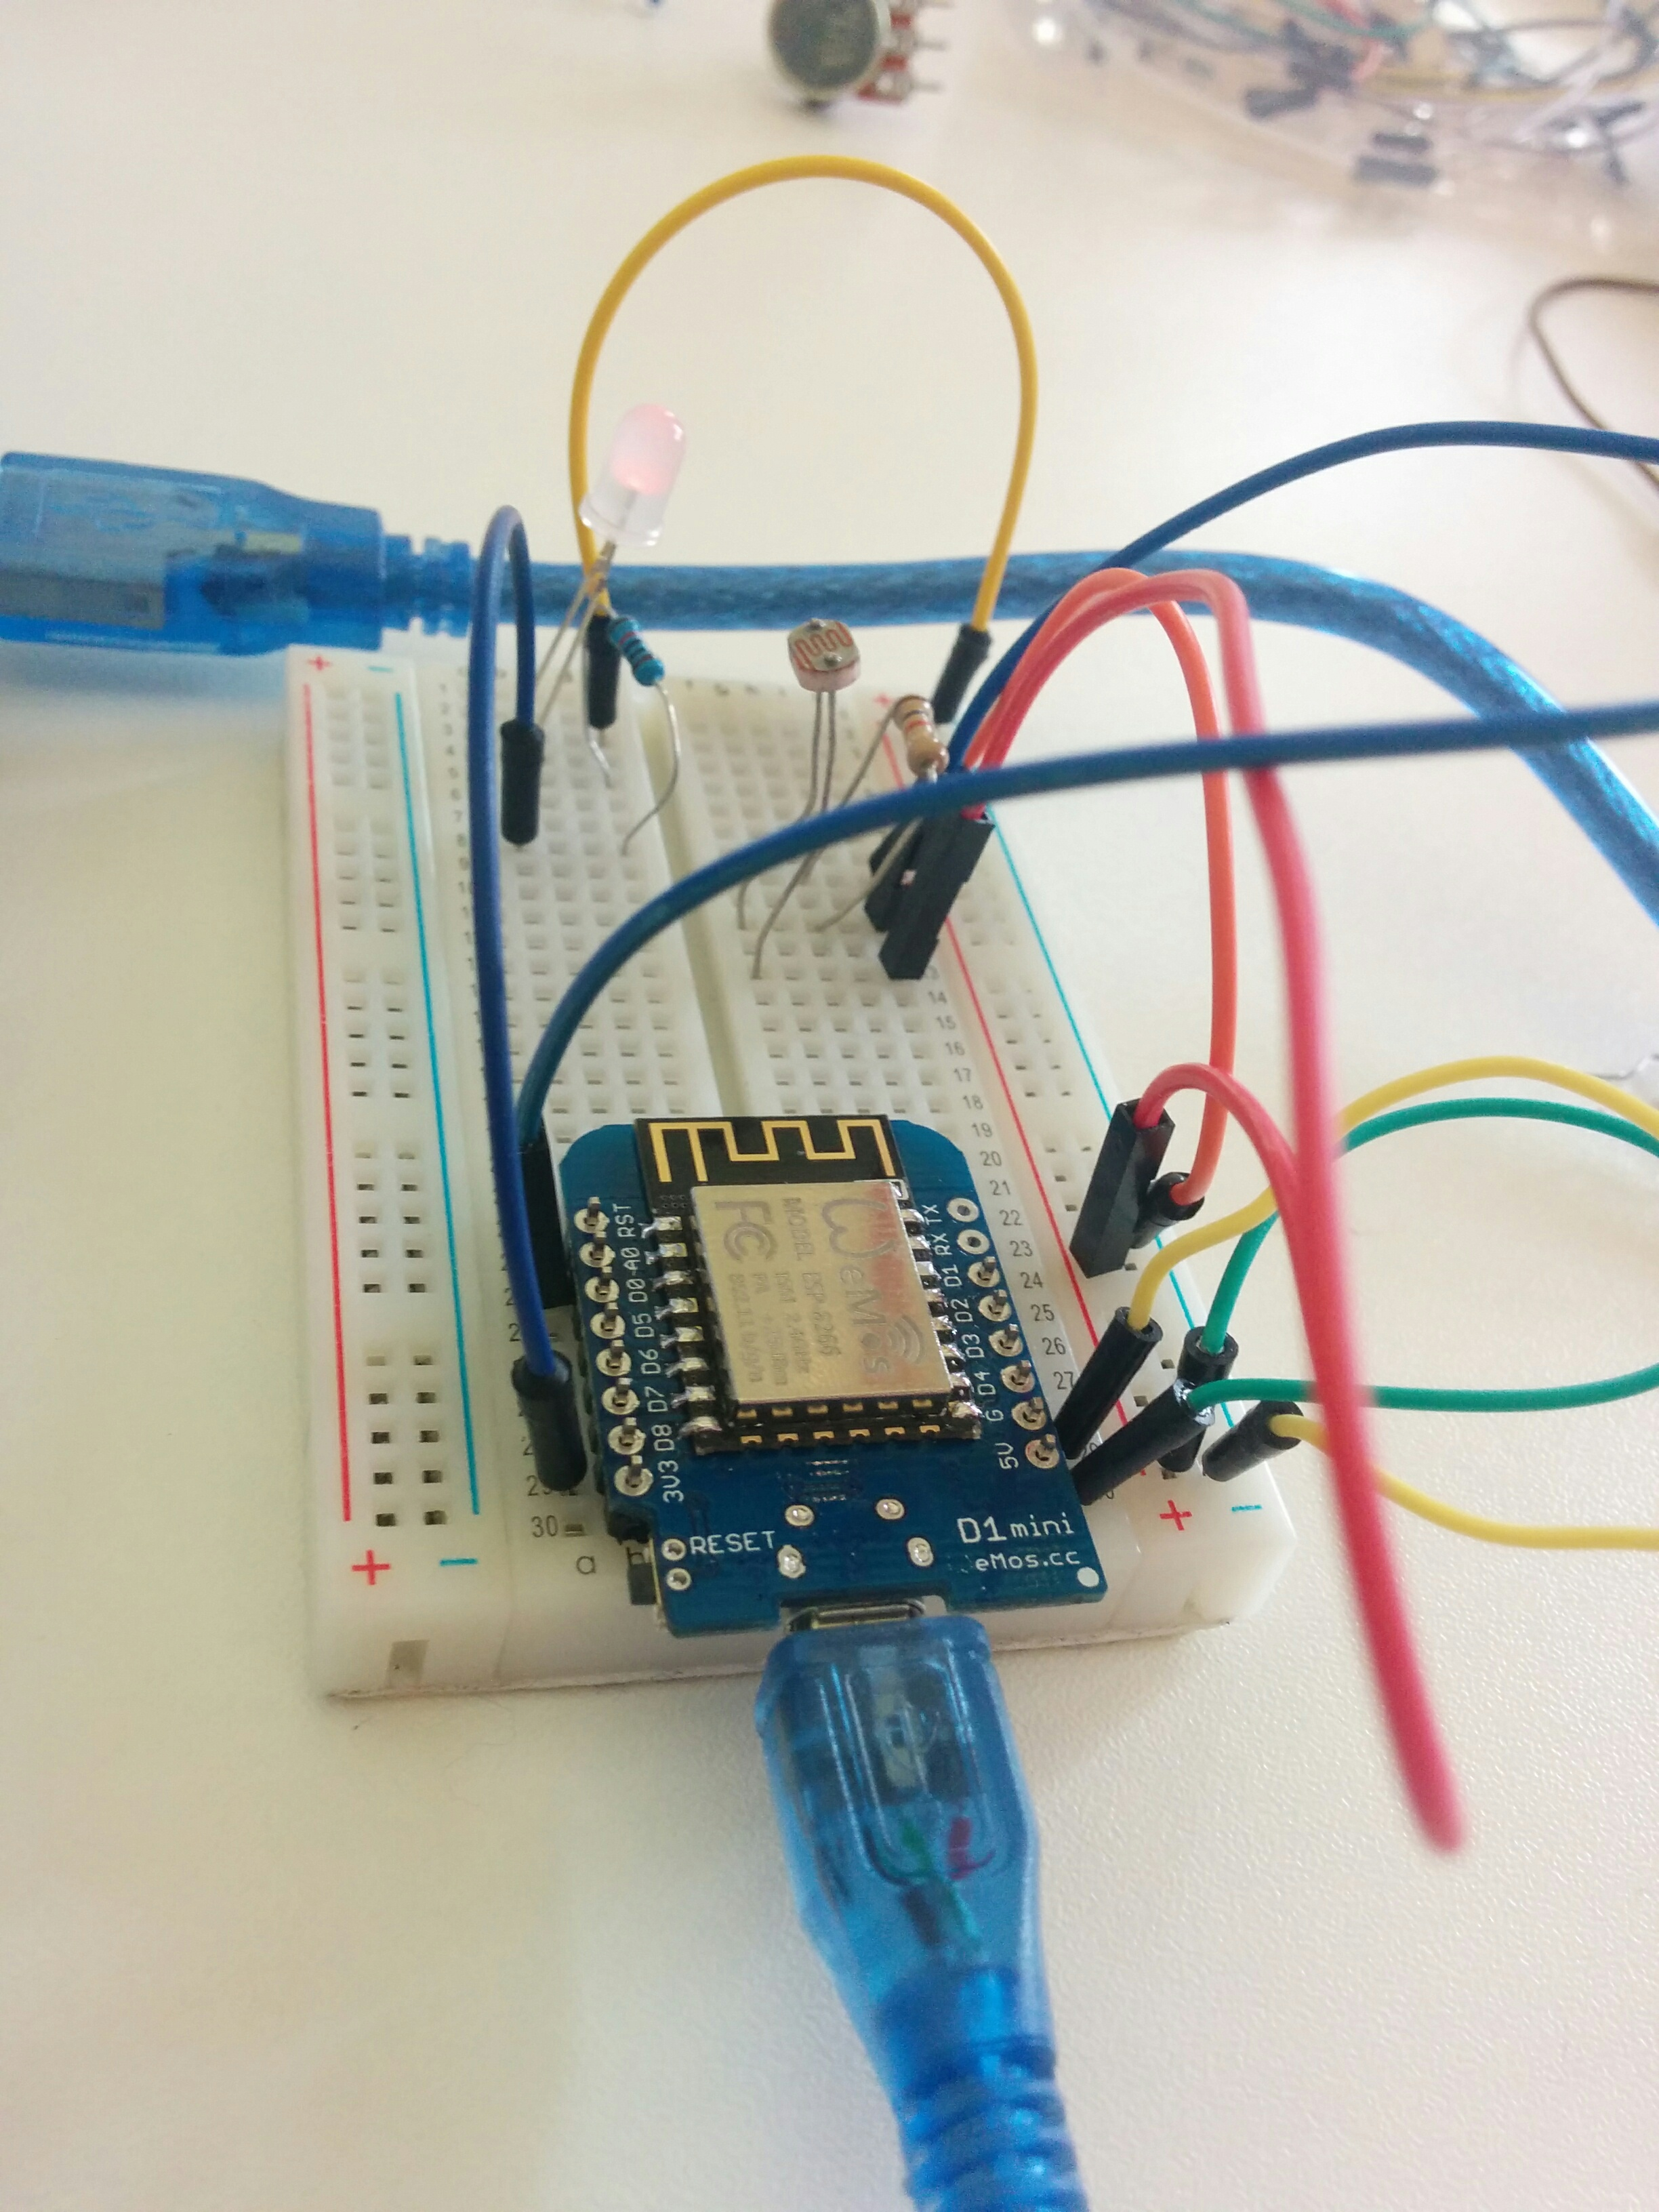 Github Dennis Van Bennekom Minor Iot For Sound Sensor Alarm This Is The Circuit Make Sure Or Ldr Connected To A0 Input And Led With D8 Output